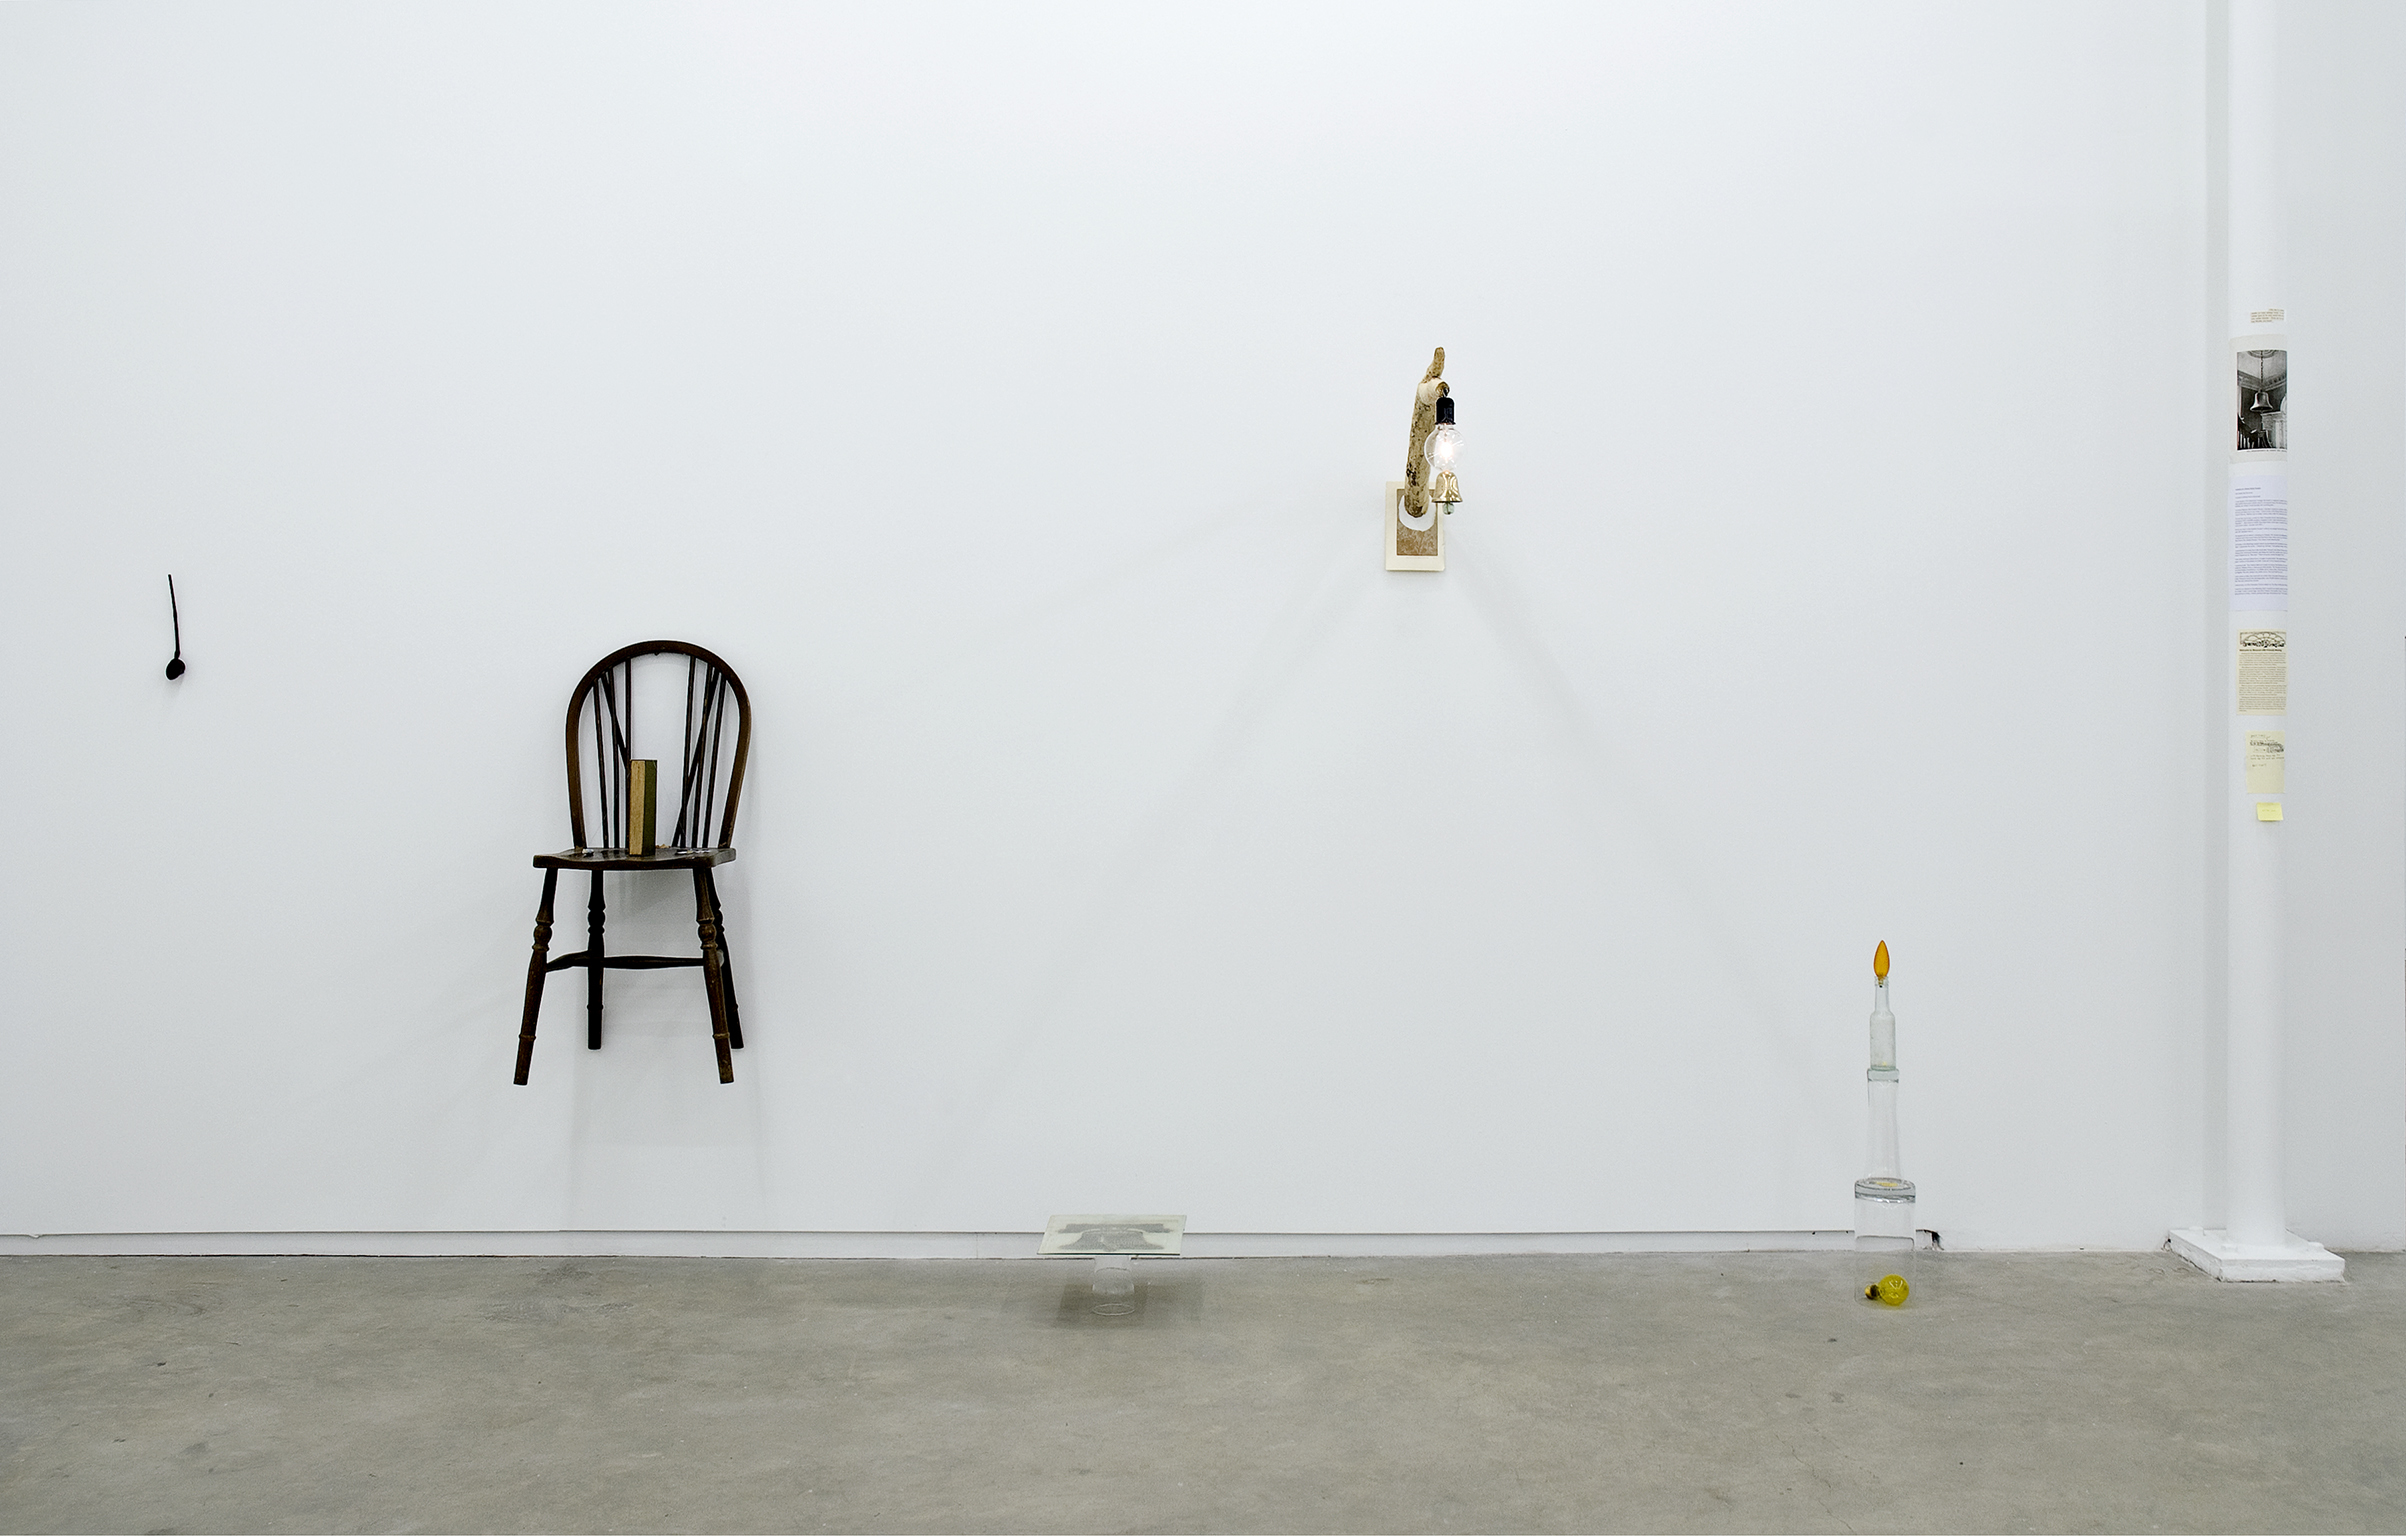 Geoffrey Farmer, I'm Not Praying I'm Just Stretching, 2009, mixed media, dimension variable by